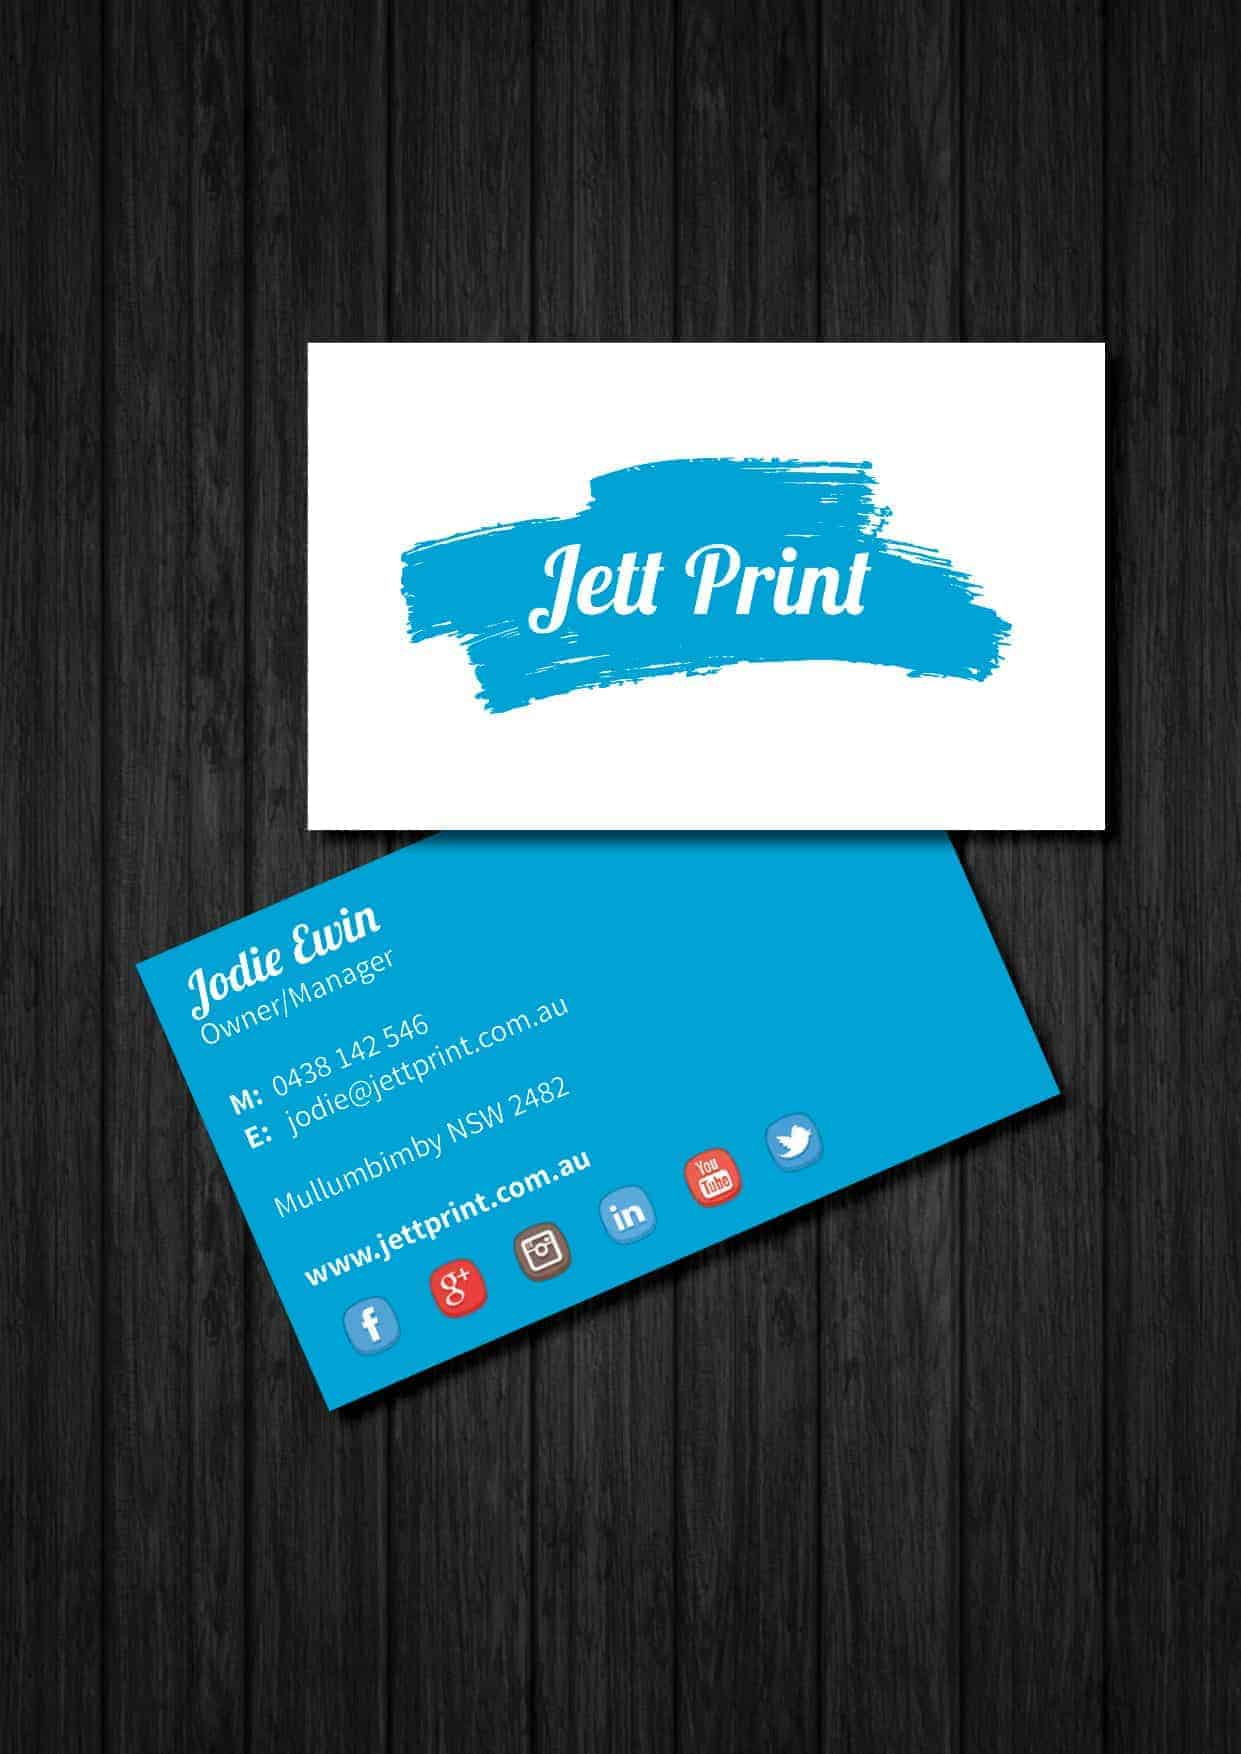 Spot uv business cards printing australia gold coast brisbane tweed online business card printing reheart Gallery